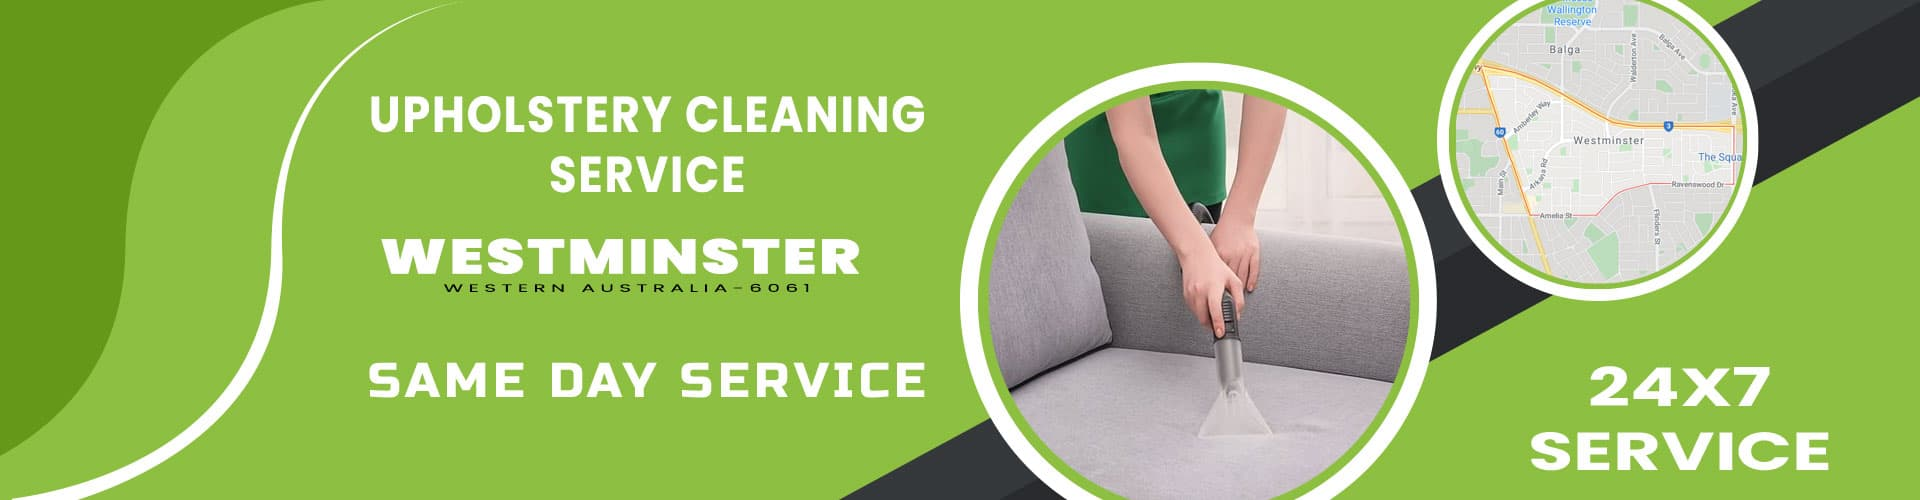 Upholstery Cleaning Westminster